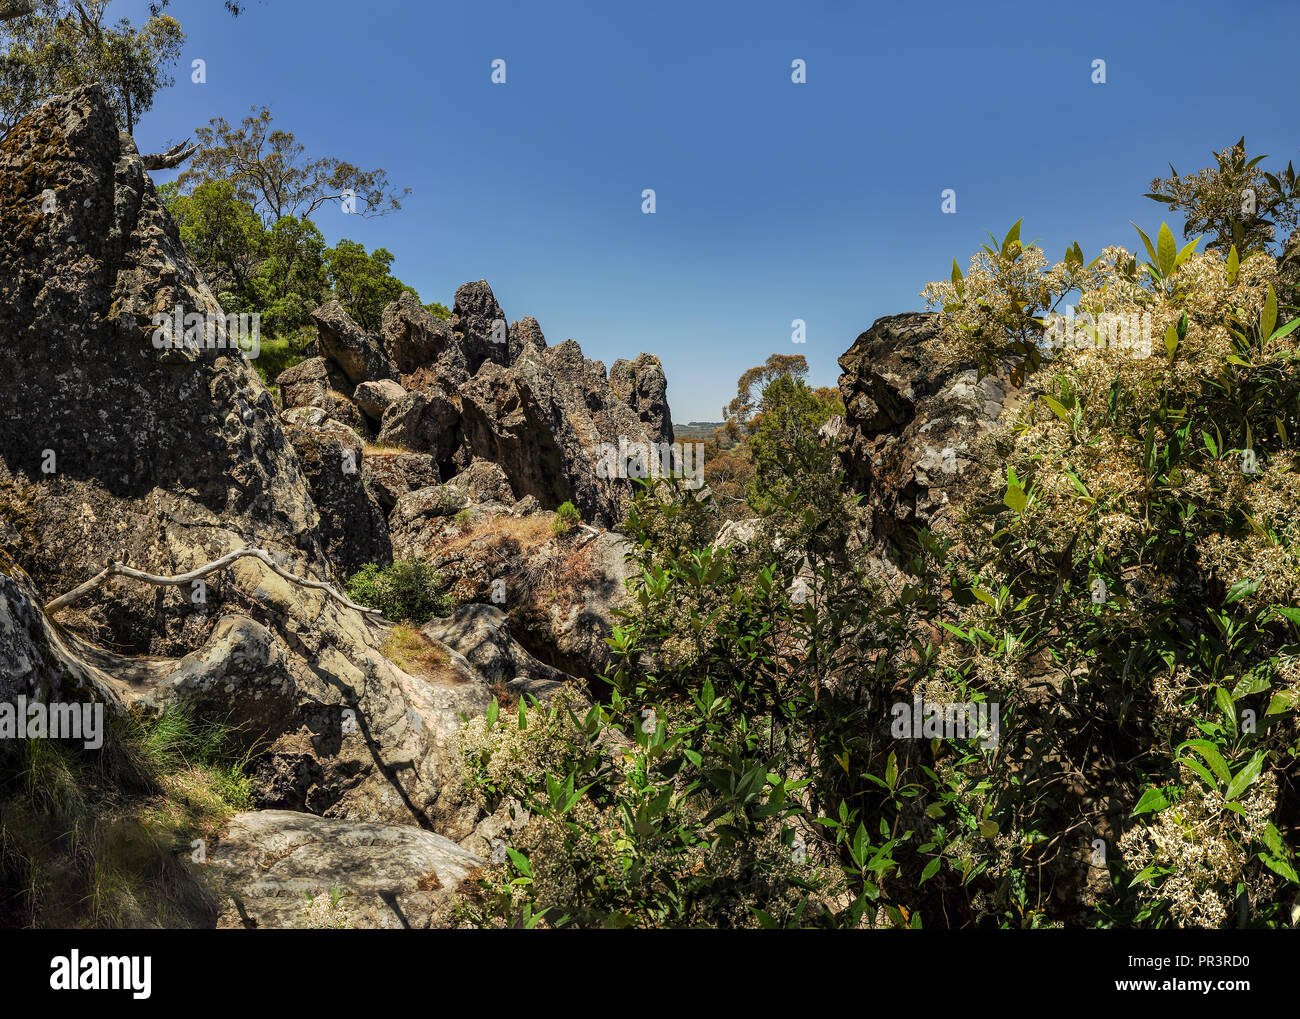 Hanging rock. - a mountain in the Central Australian state of Victoria, about 70 km Northwest of Melbourne. - Stock Image